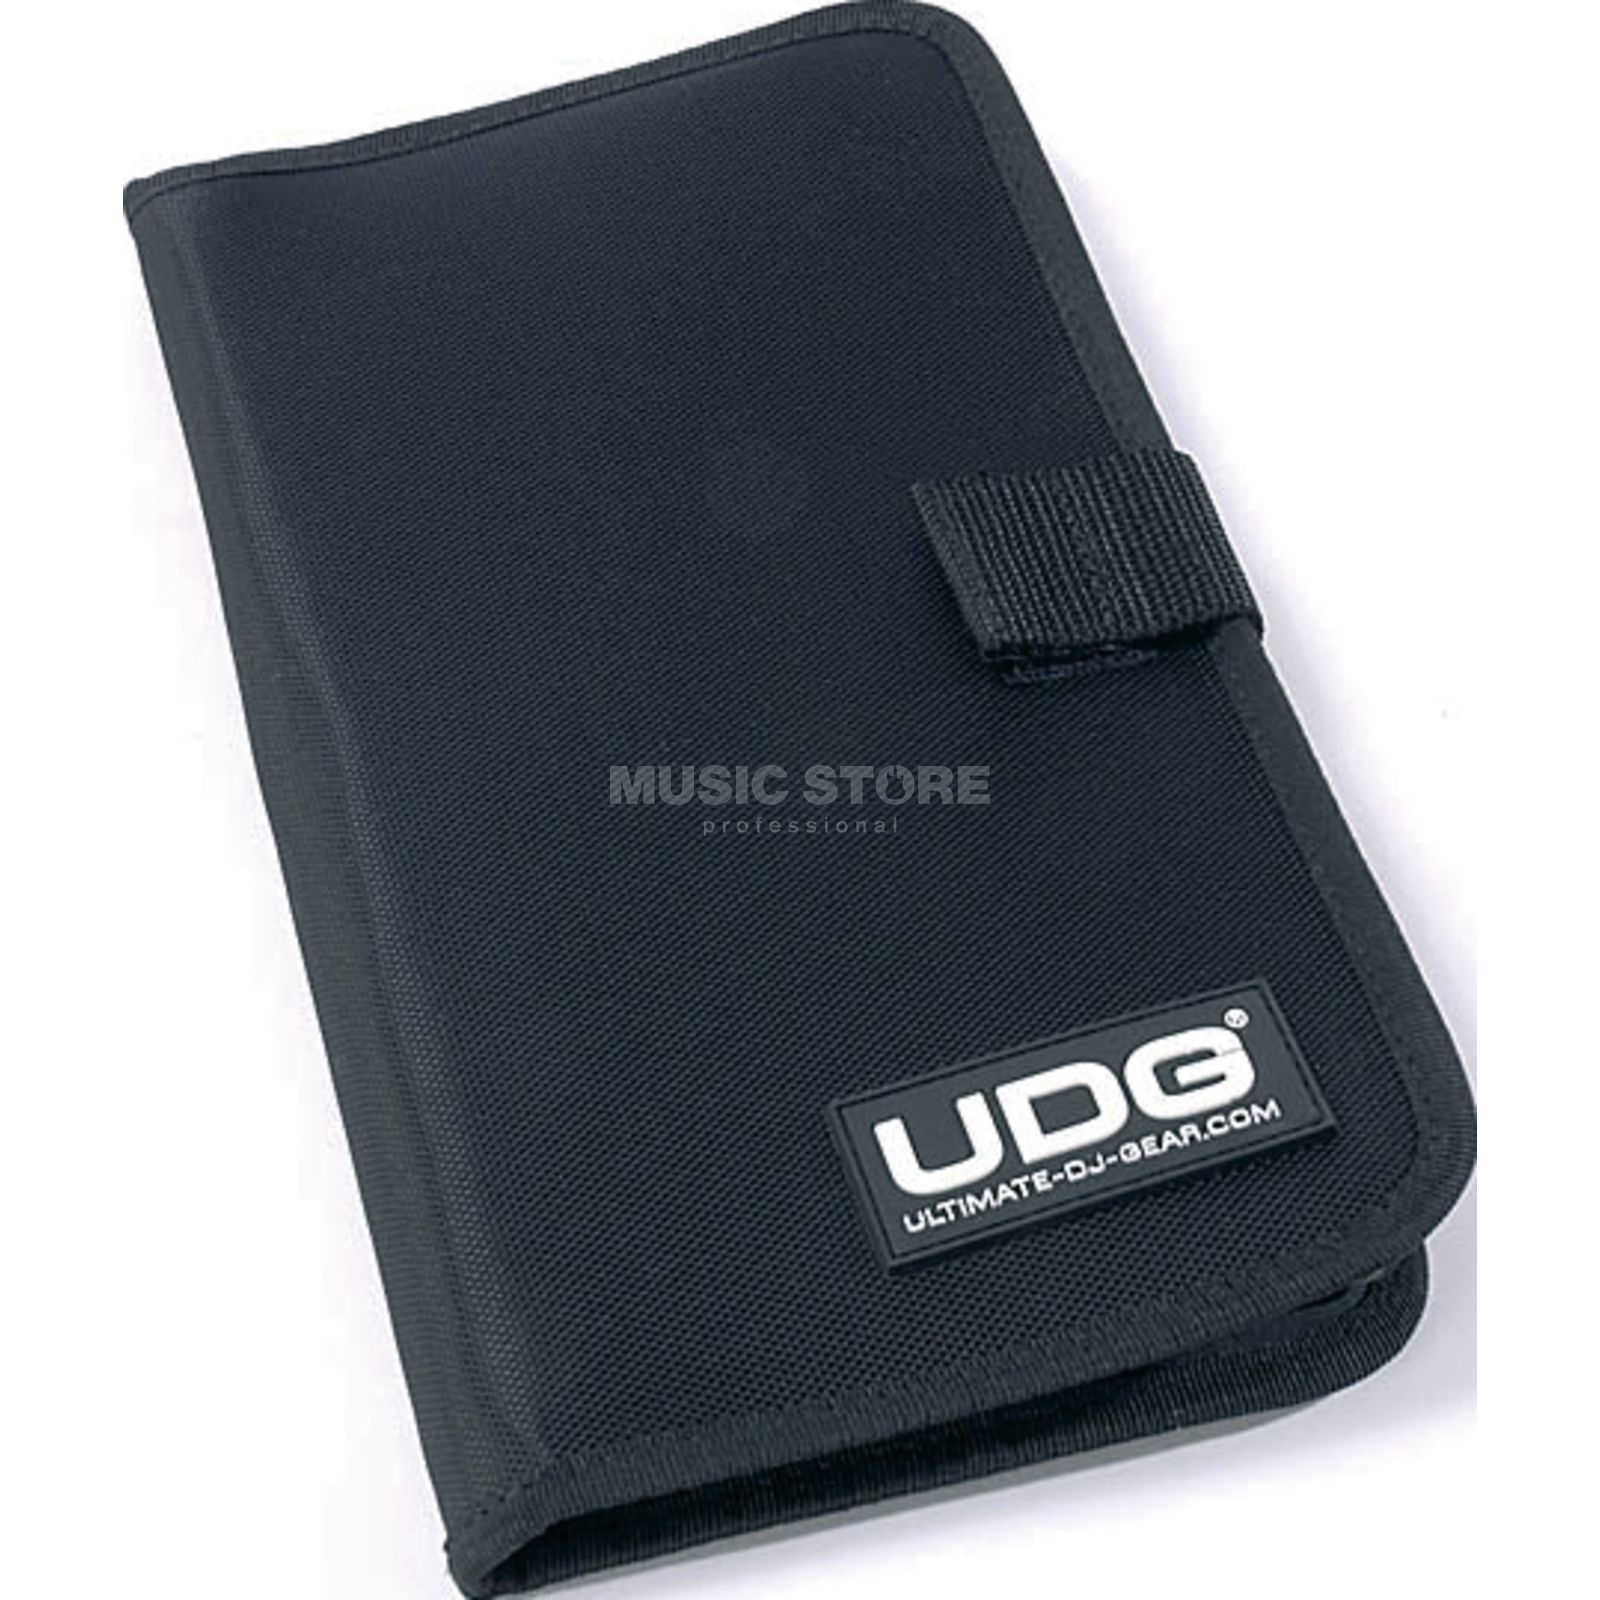 UDG CD Map black (U9980bl) for 24 CDs Immagine prodotto